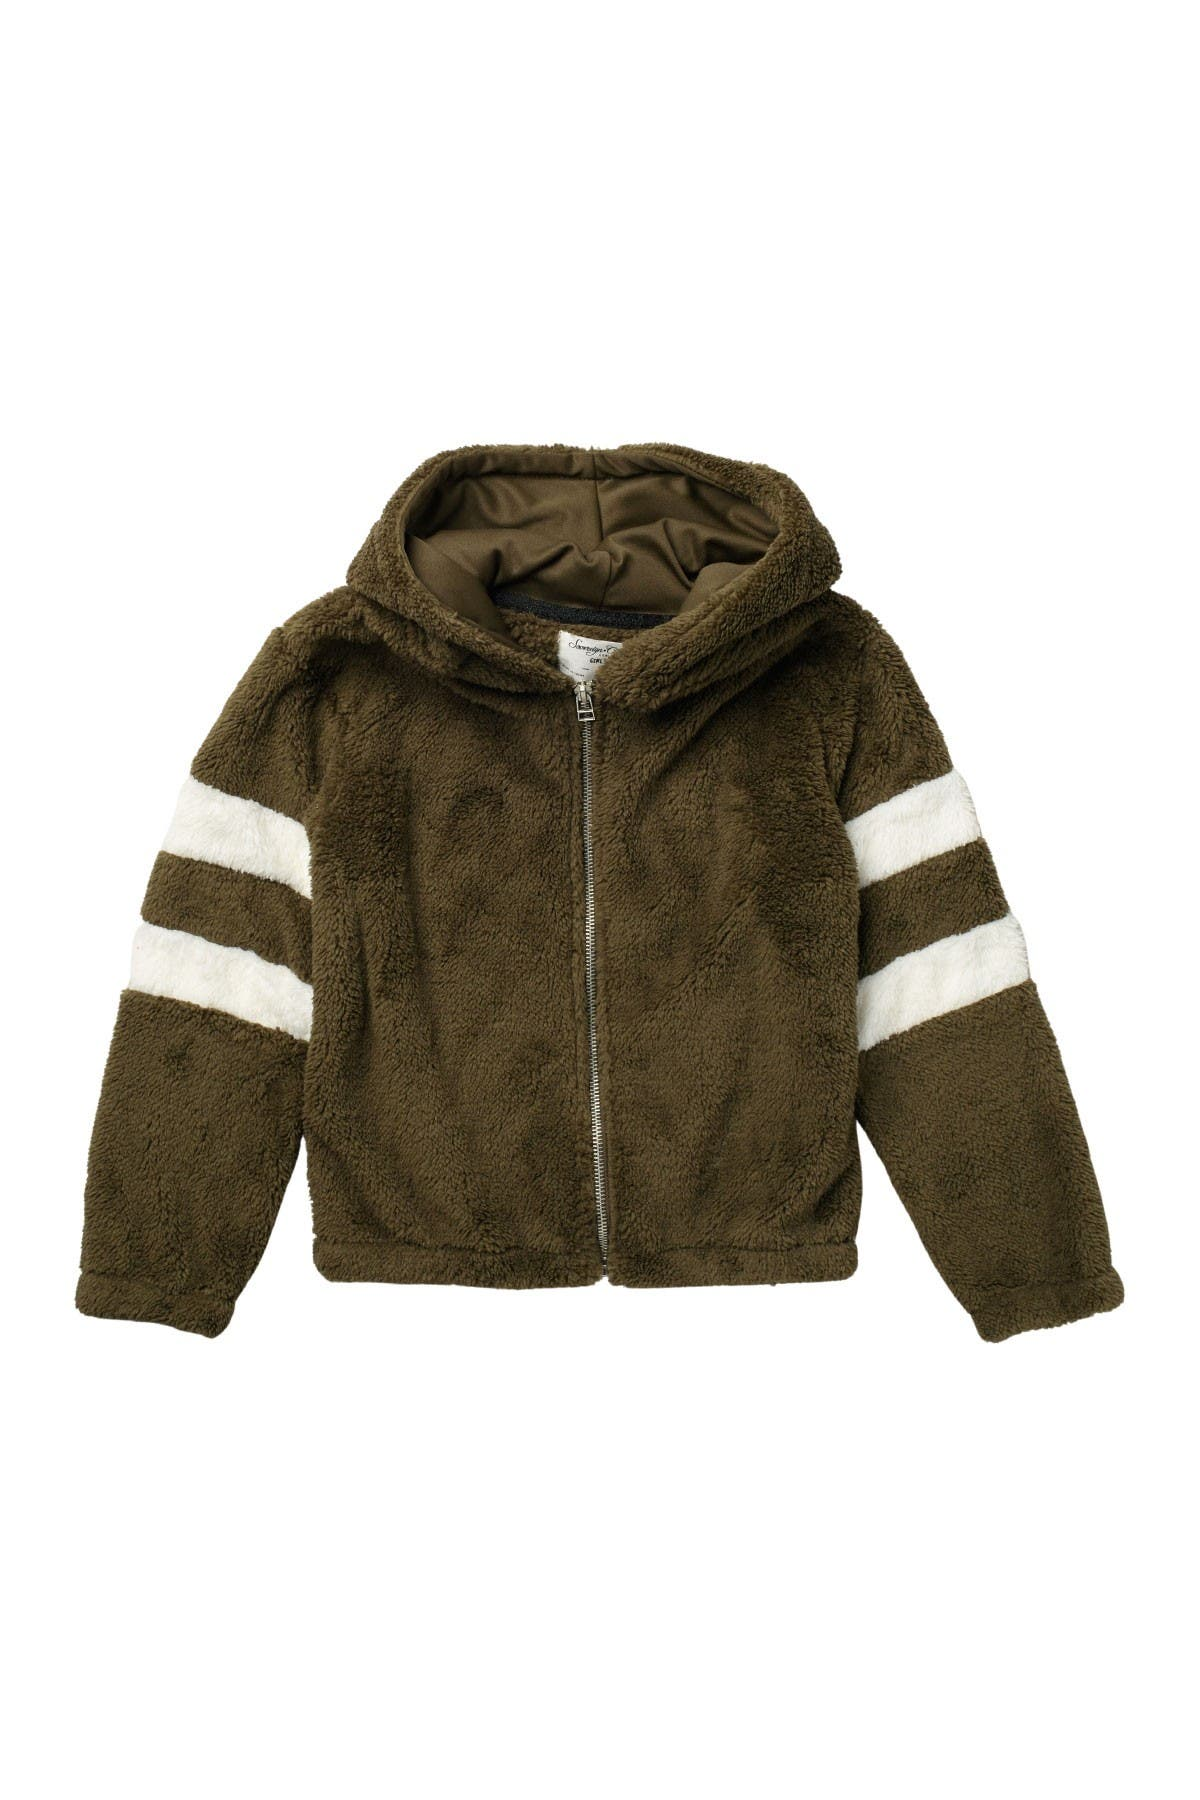 Image of Sovereign Code Cassia Teddy Hoodie Jacket